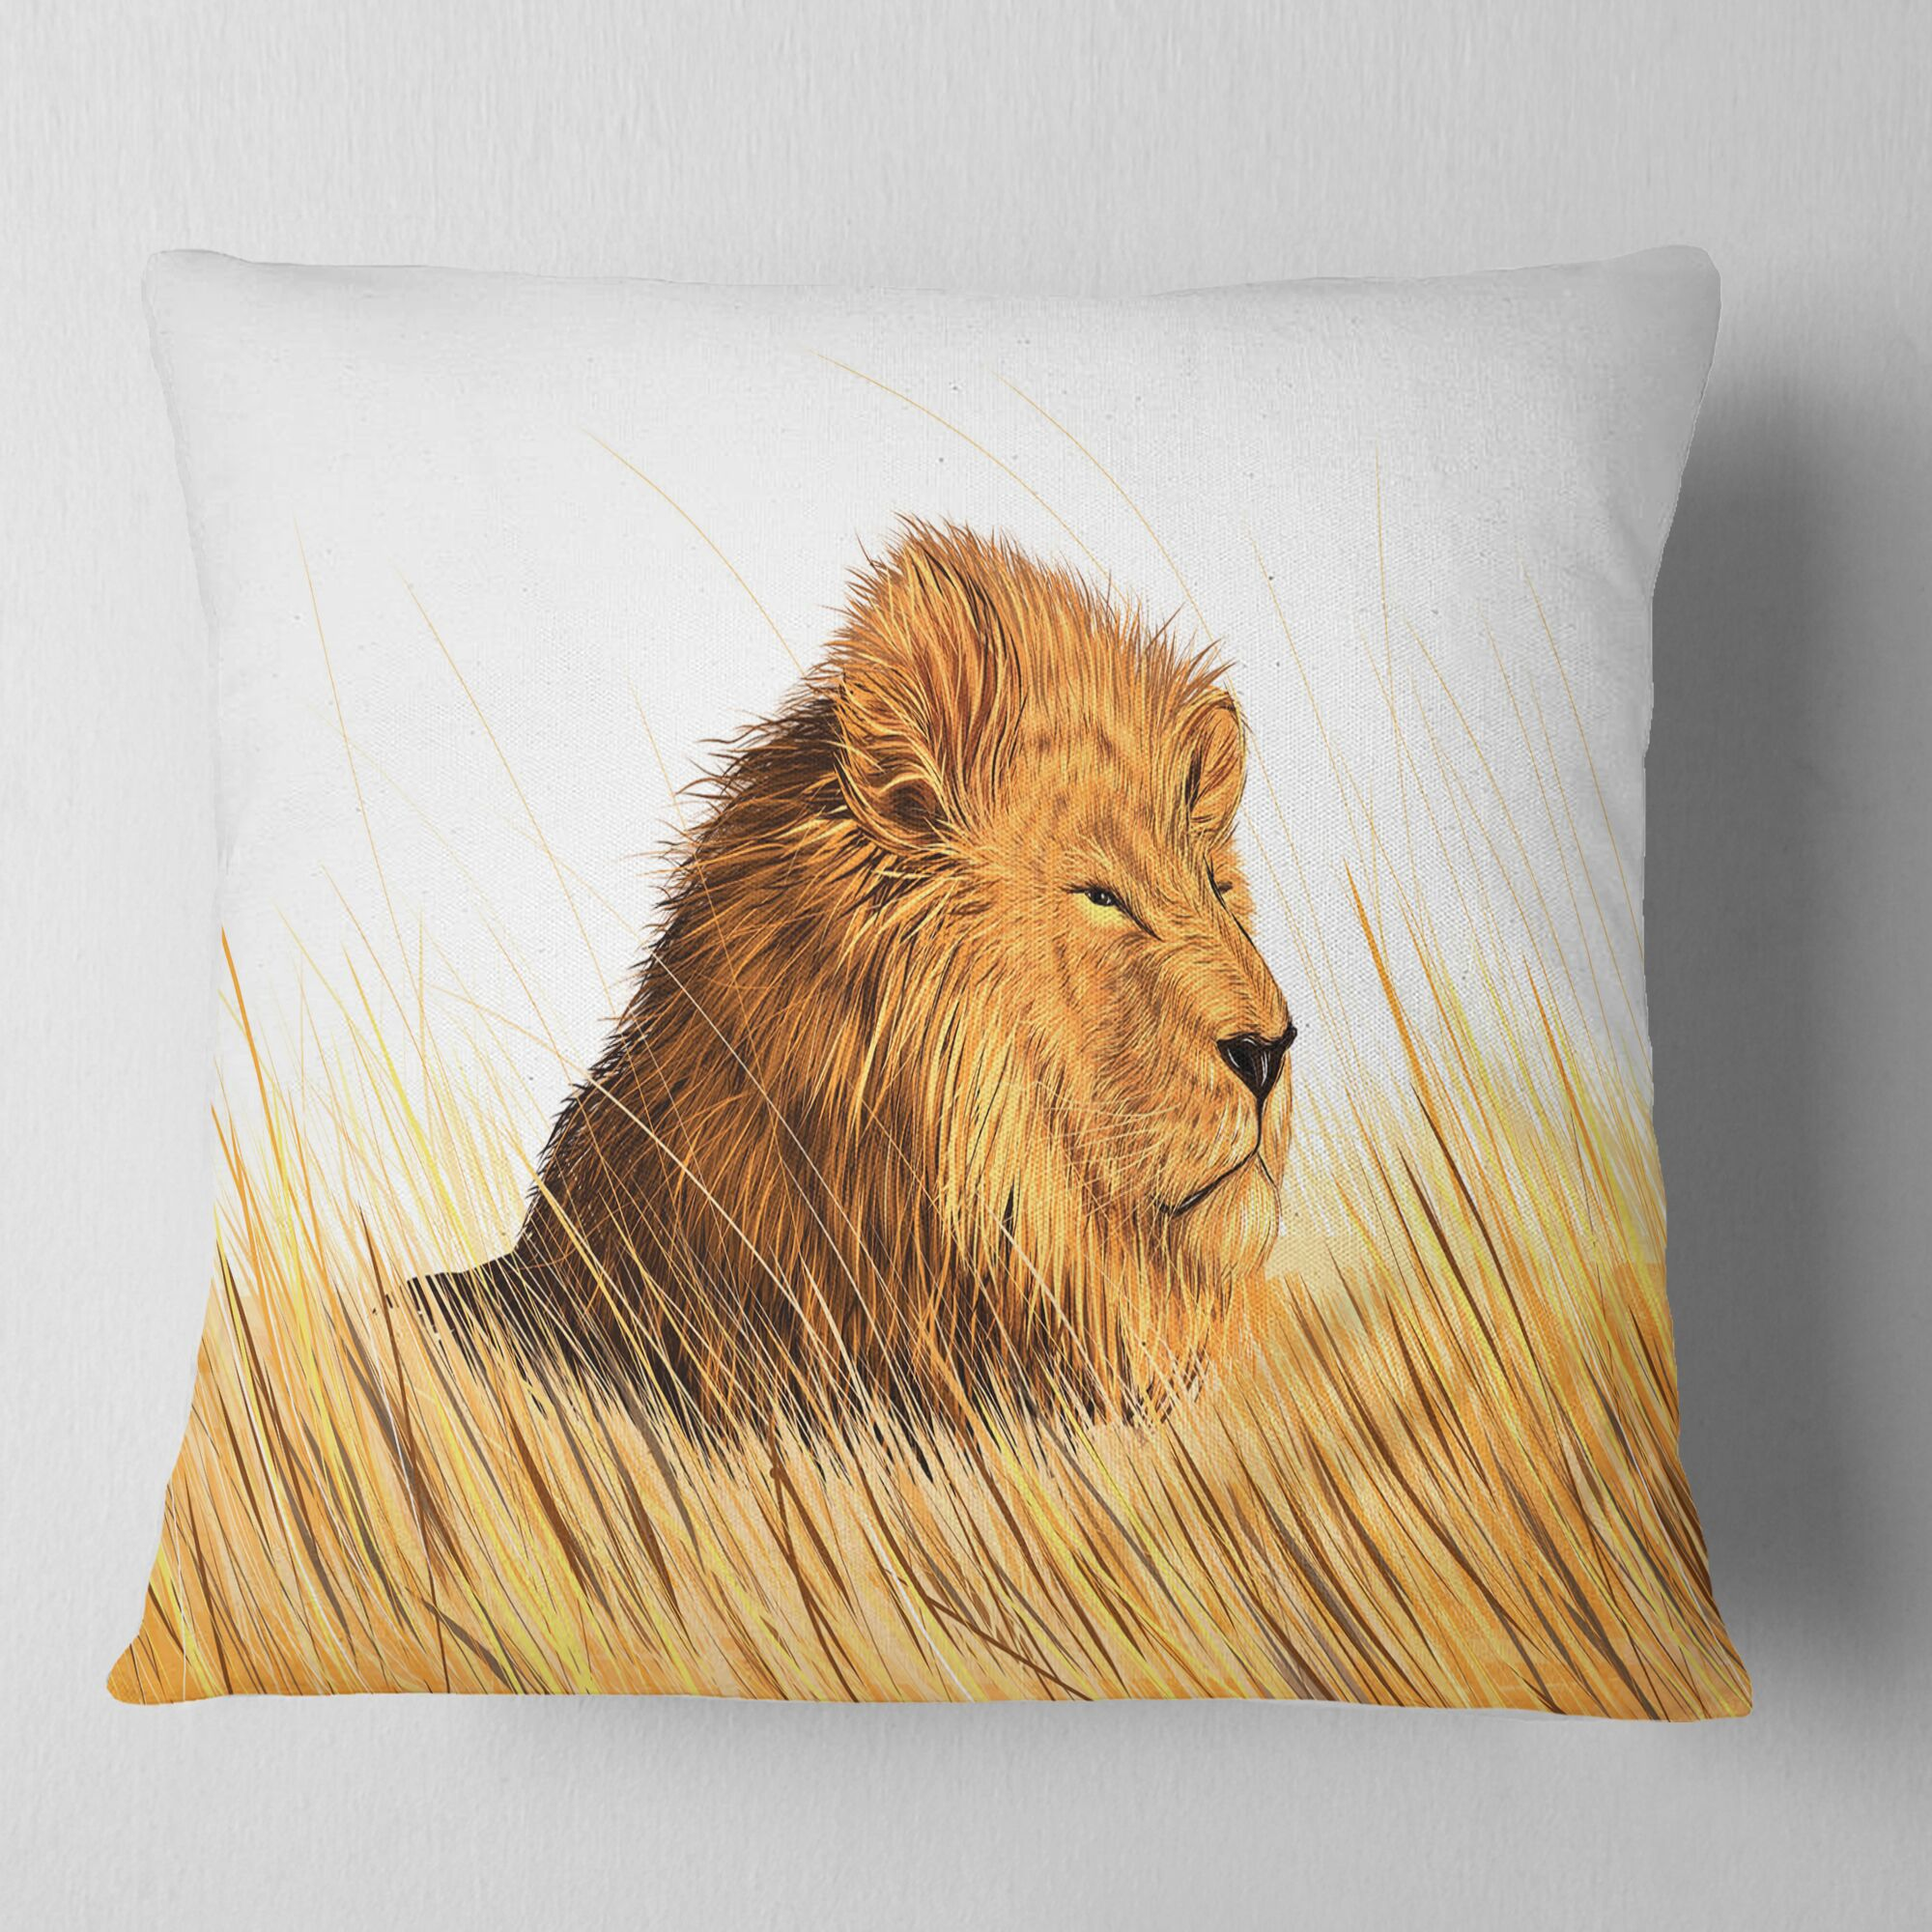 Animal Lion Watching the Surroundings Pillow Size: 18